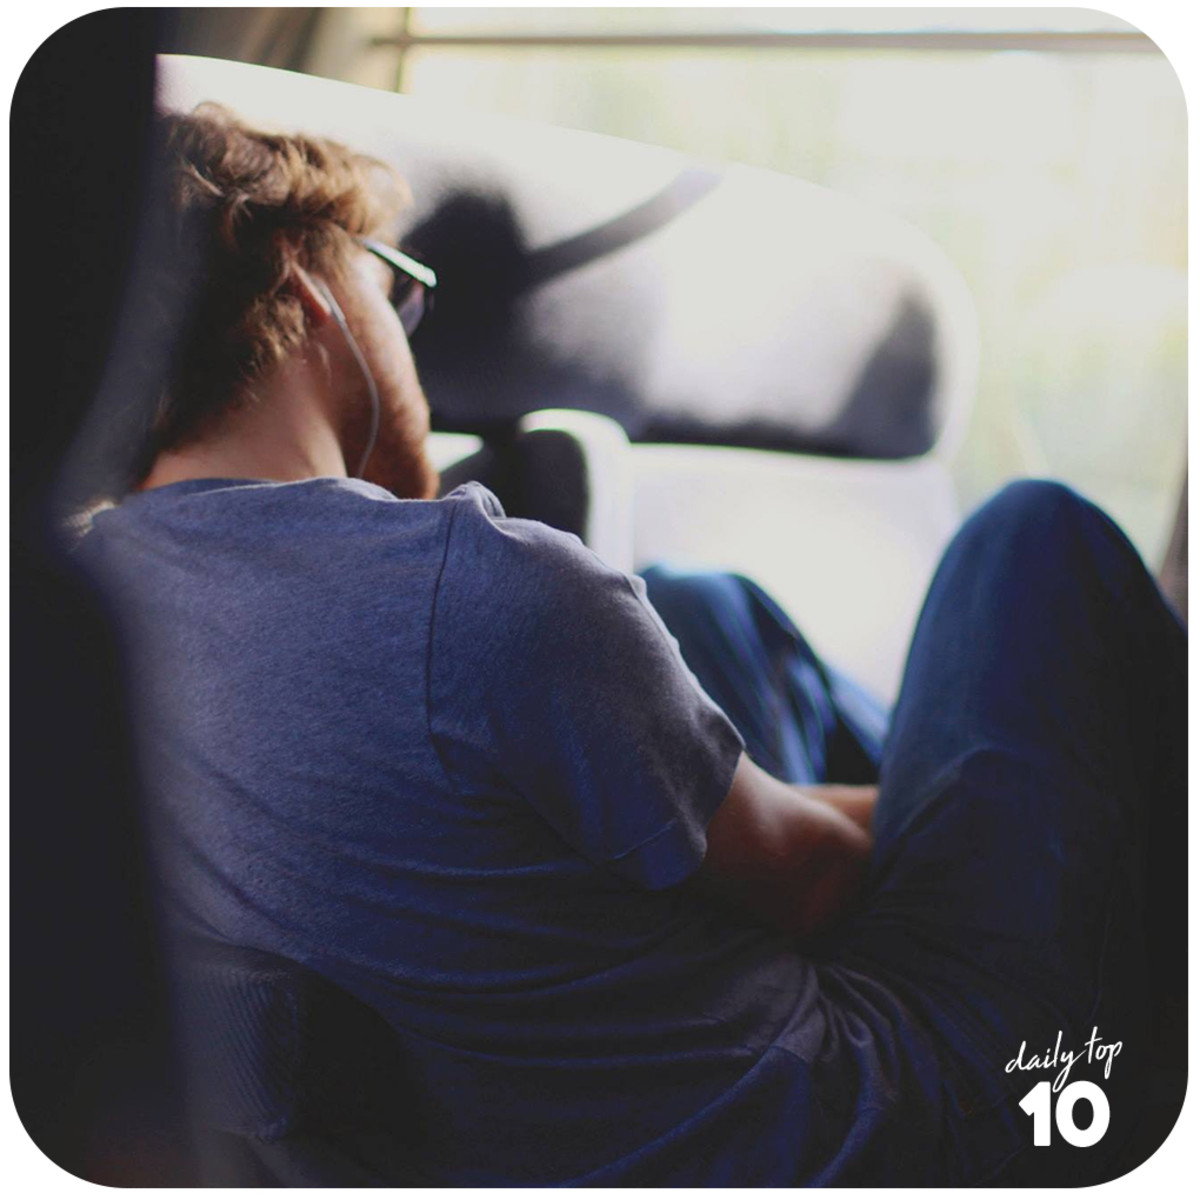 Sleeping can help normalize your metabolism.